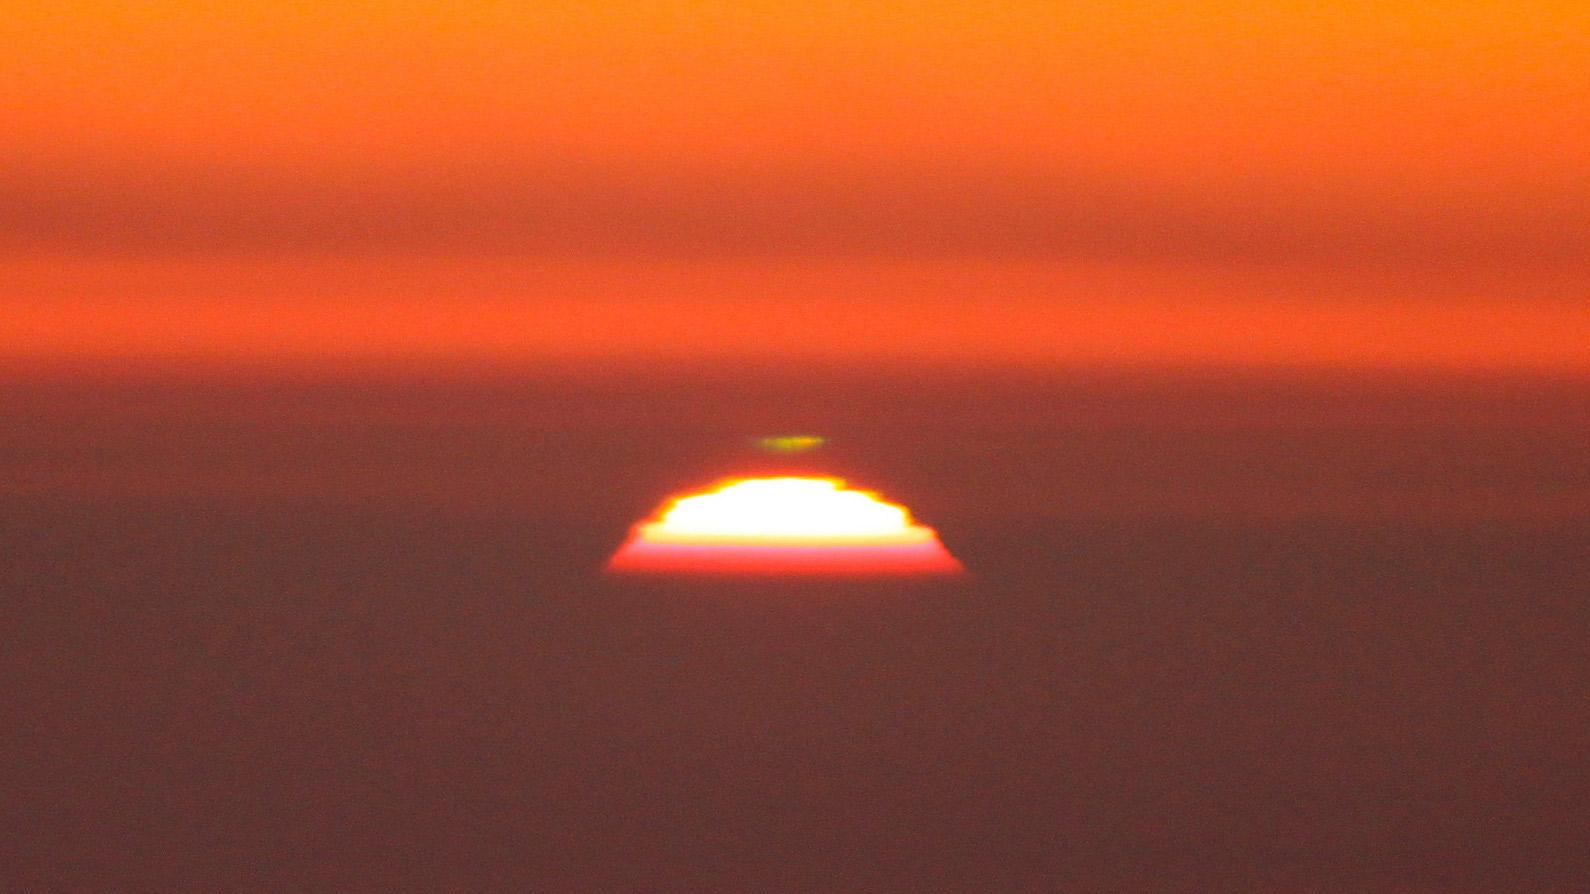 At the Right Place at the Right Time to See a Rare Green Flash Figure